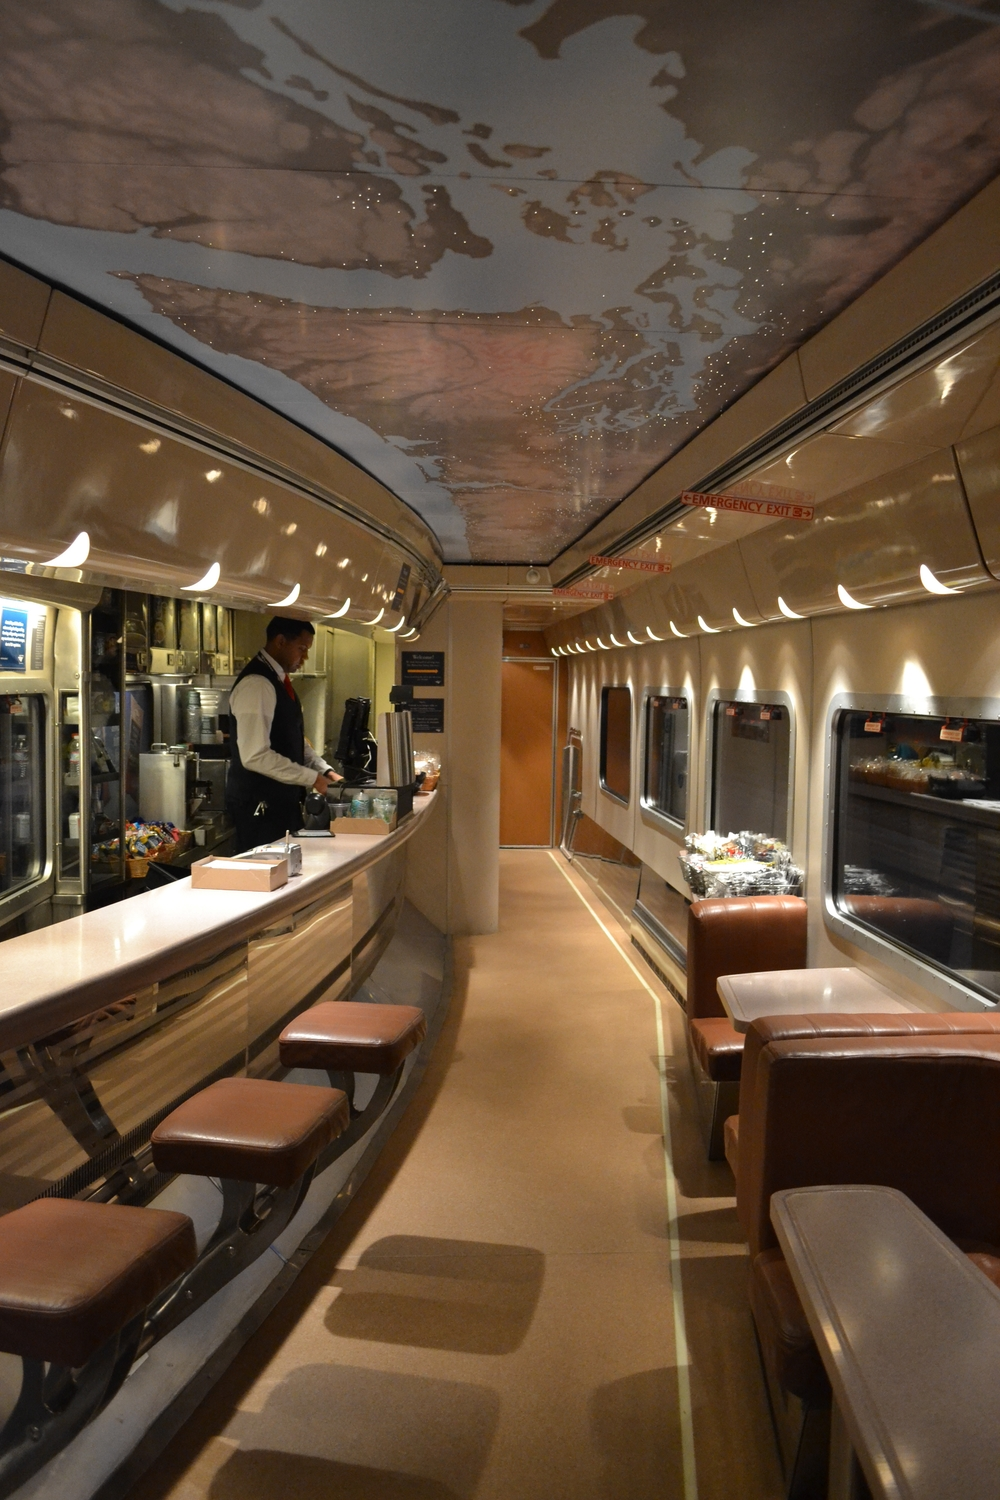 Amtrak Cascades Dining Car